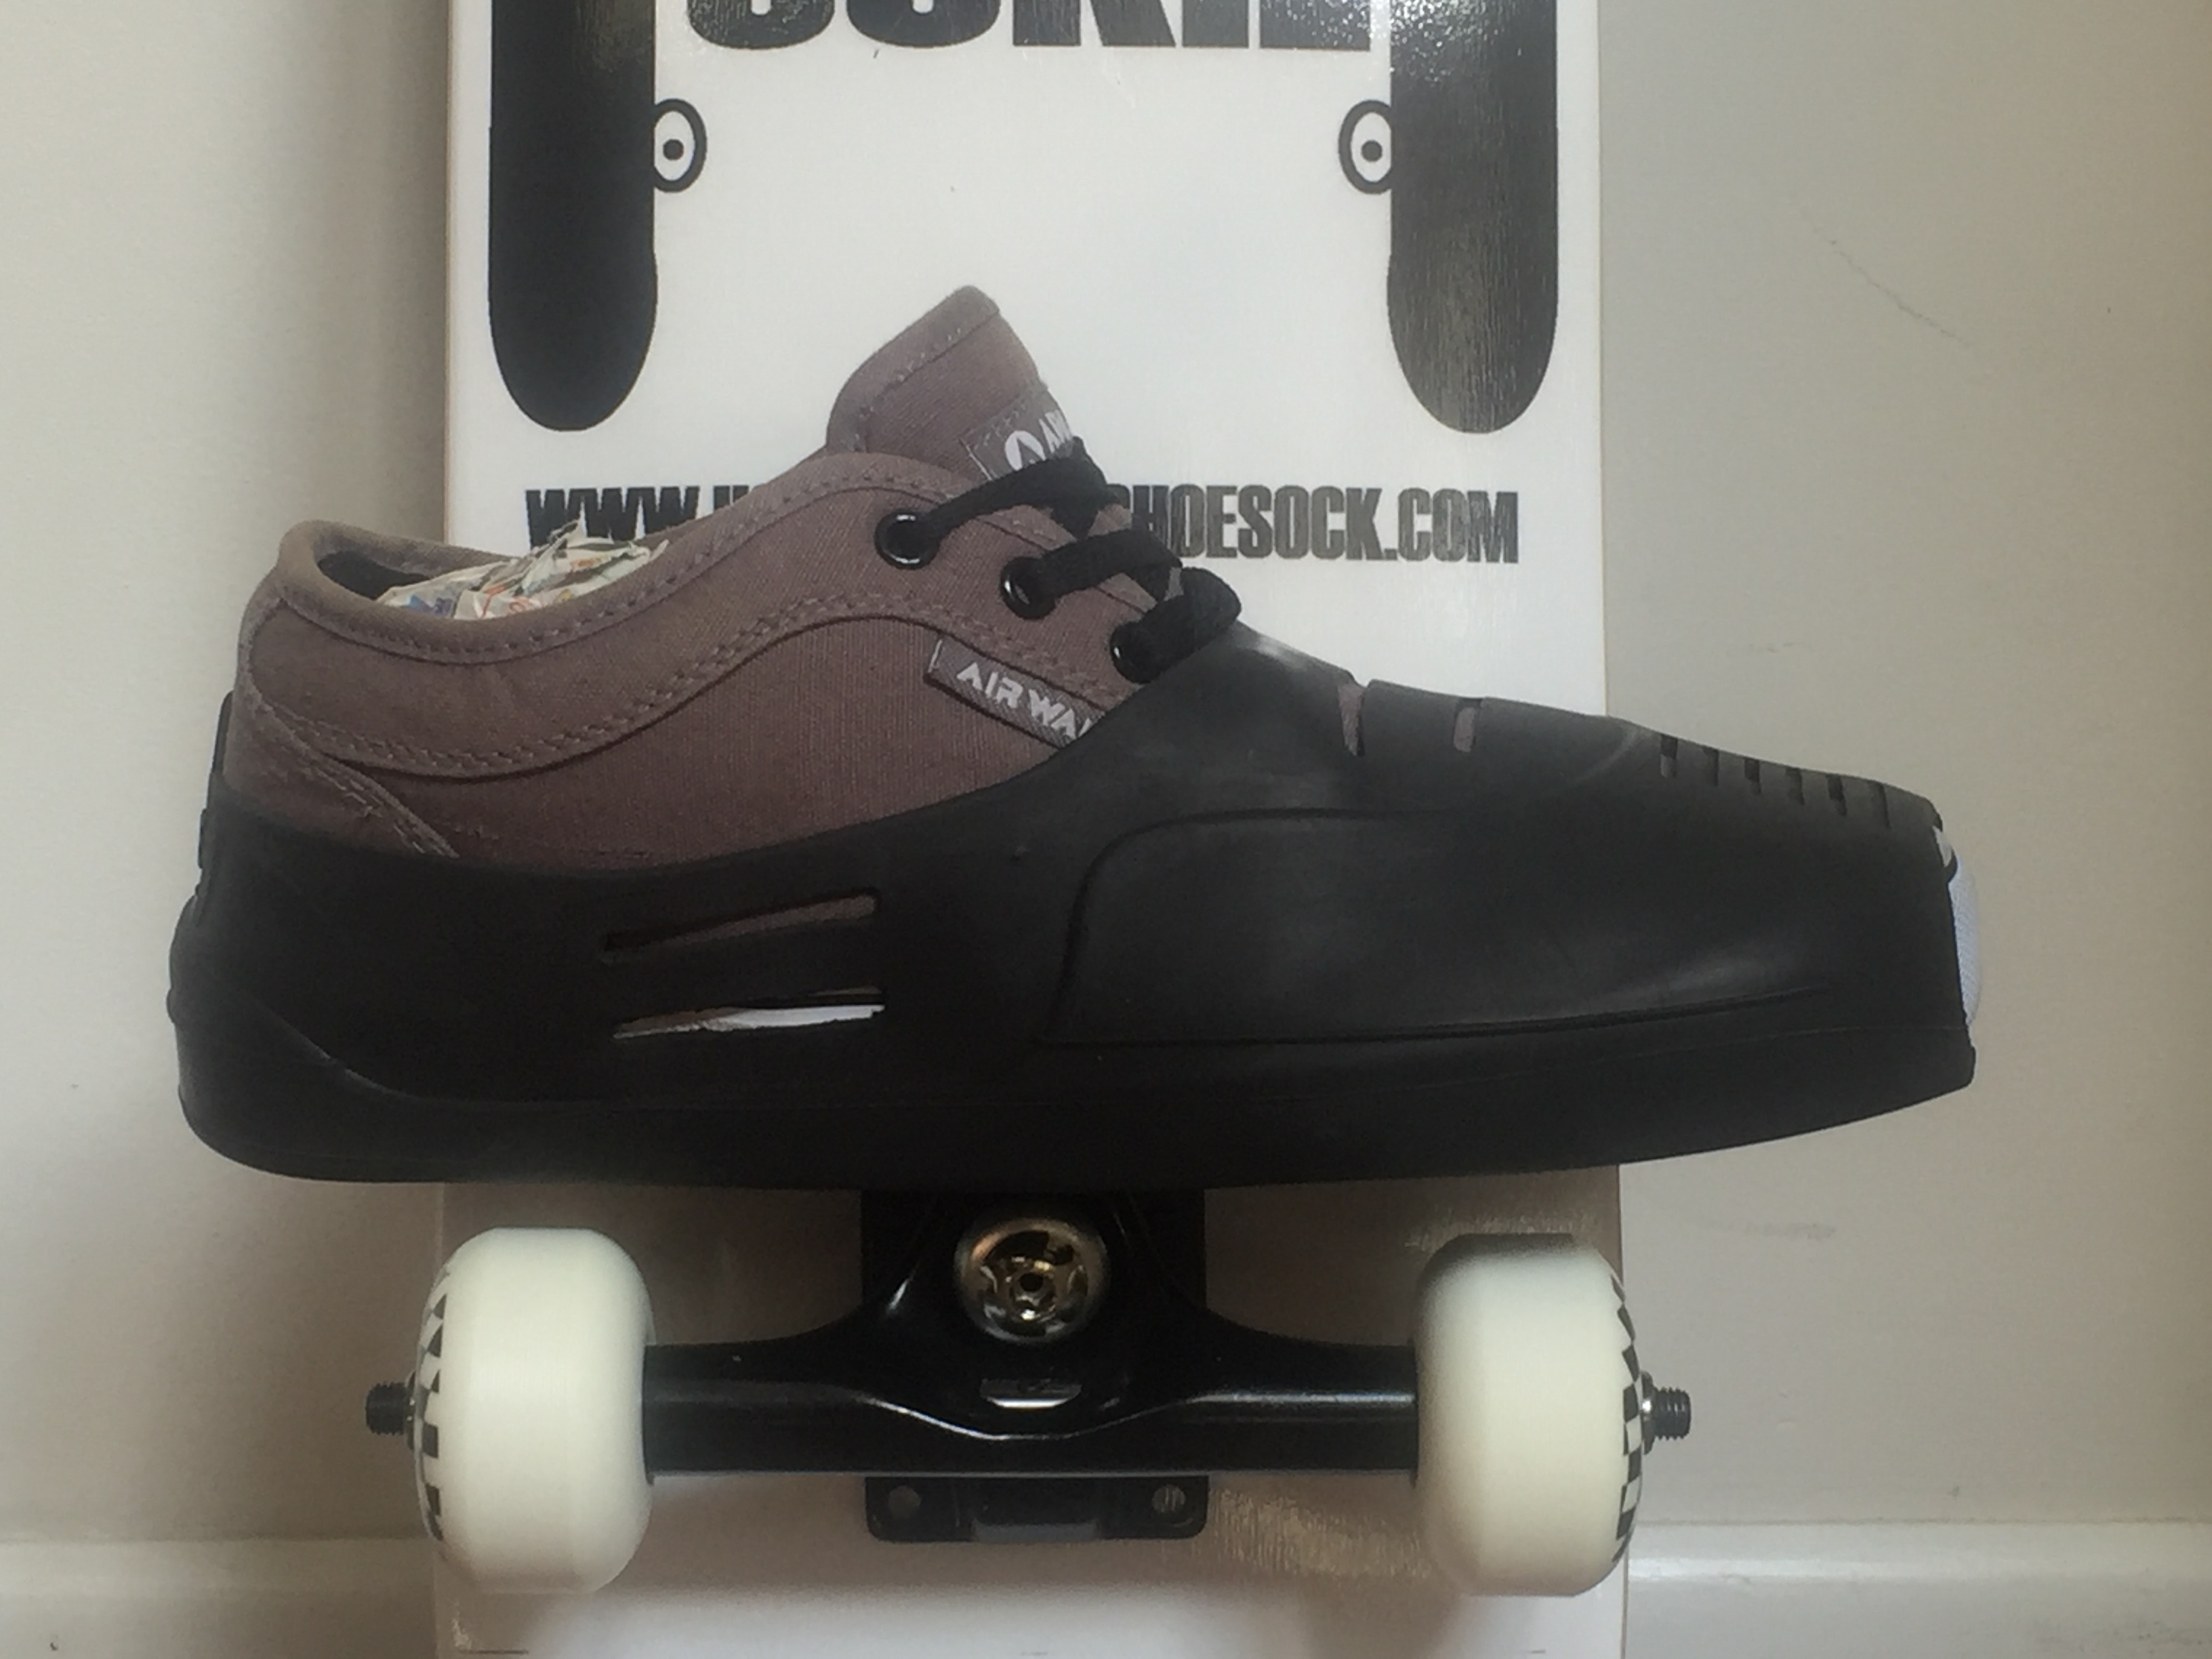 Lightweight Detachable Skates : flashing roller skates